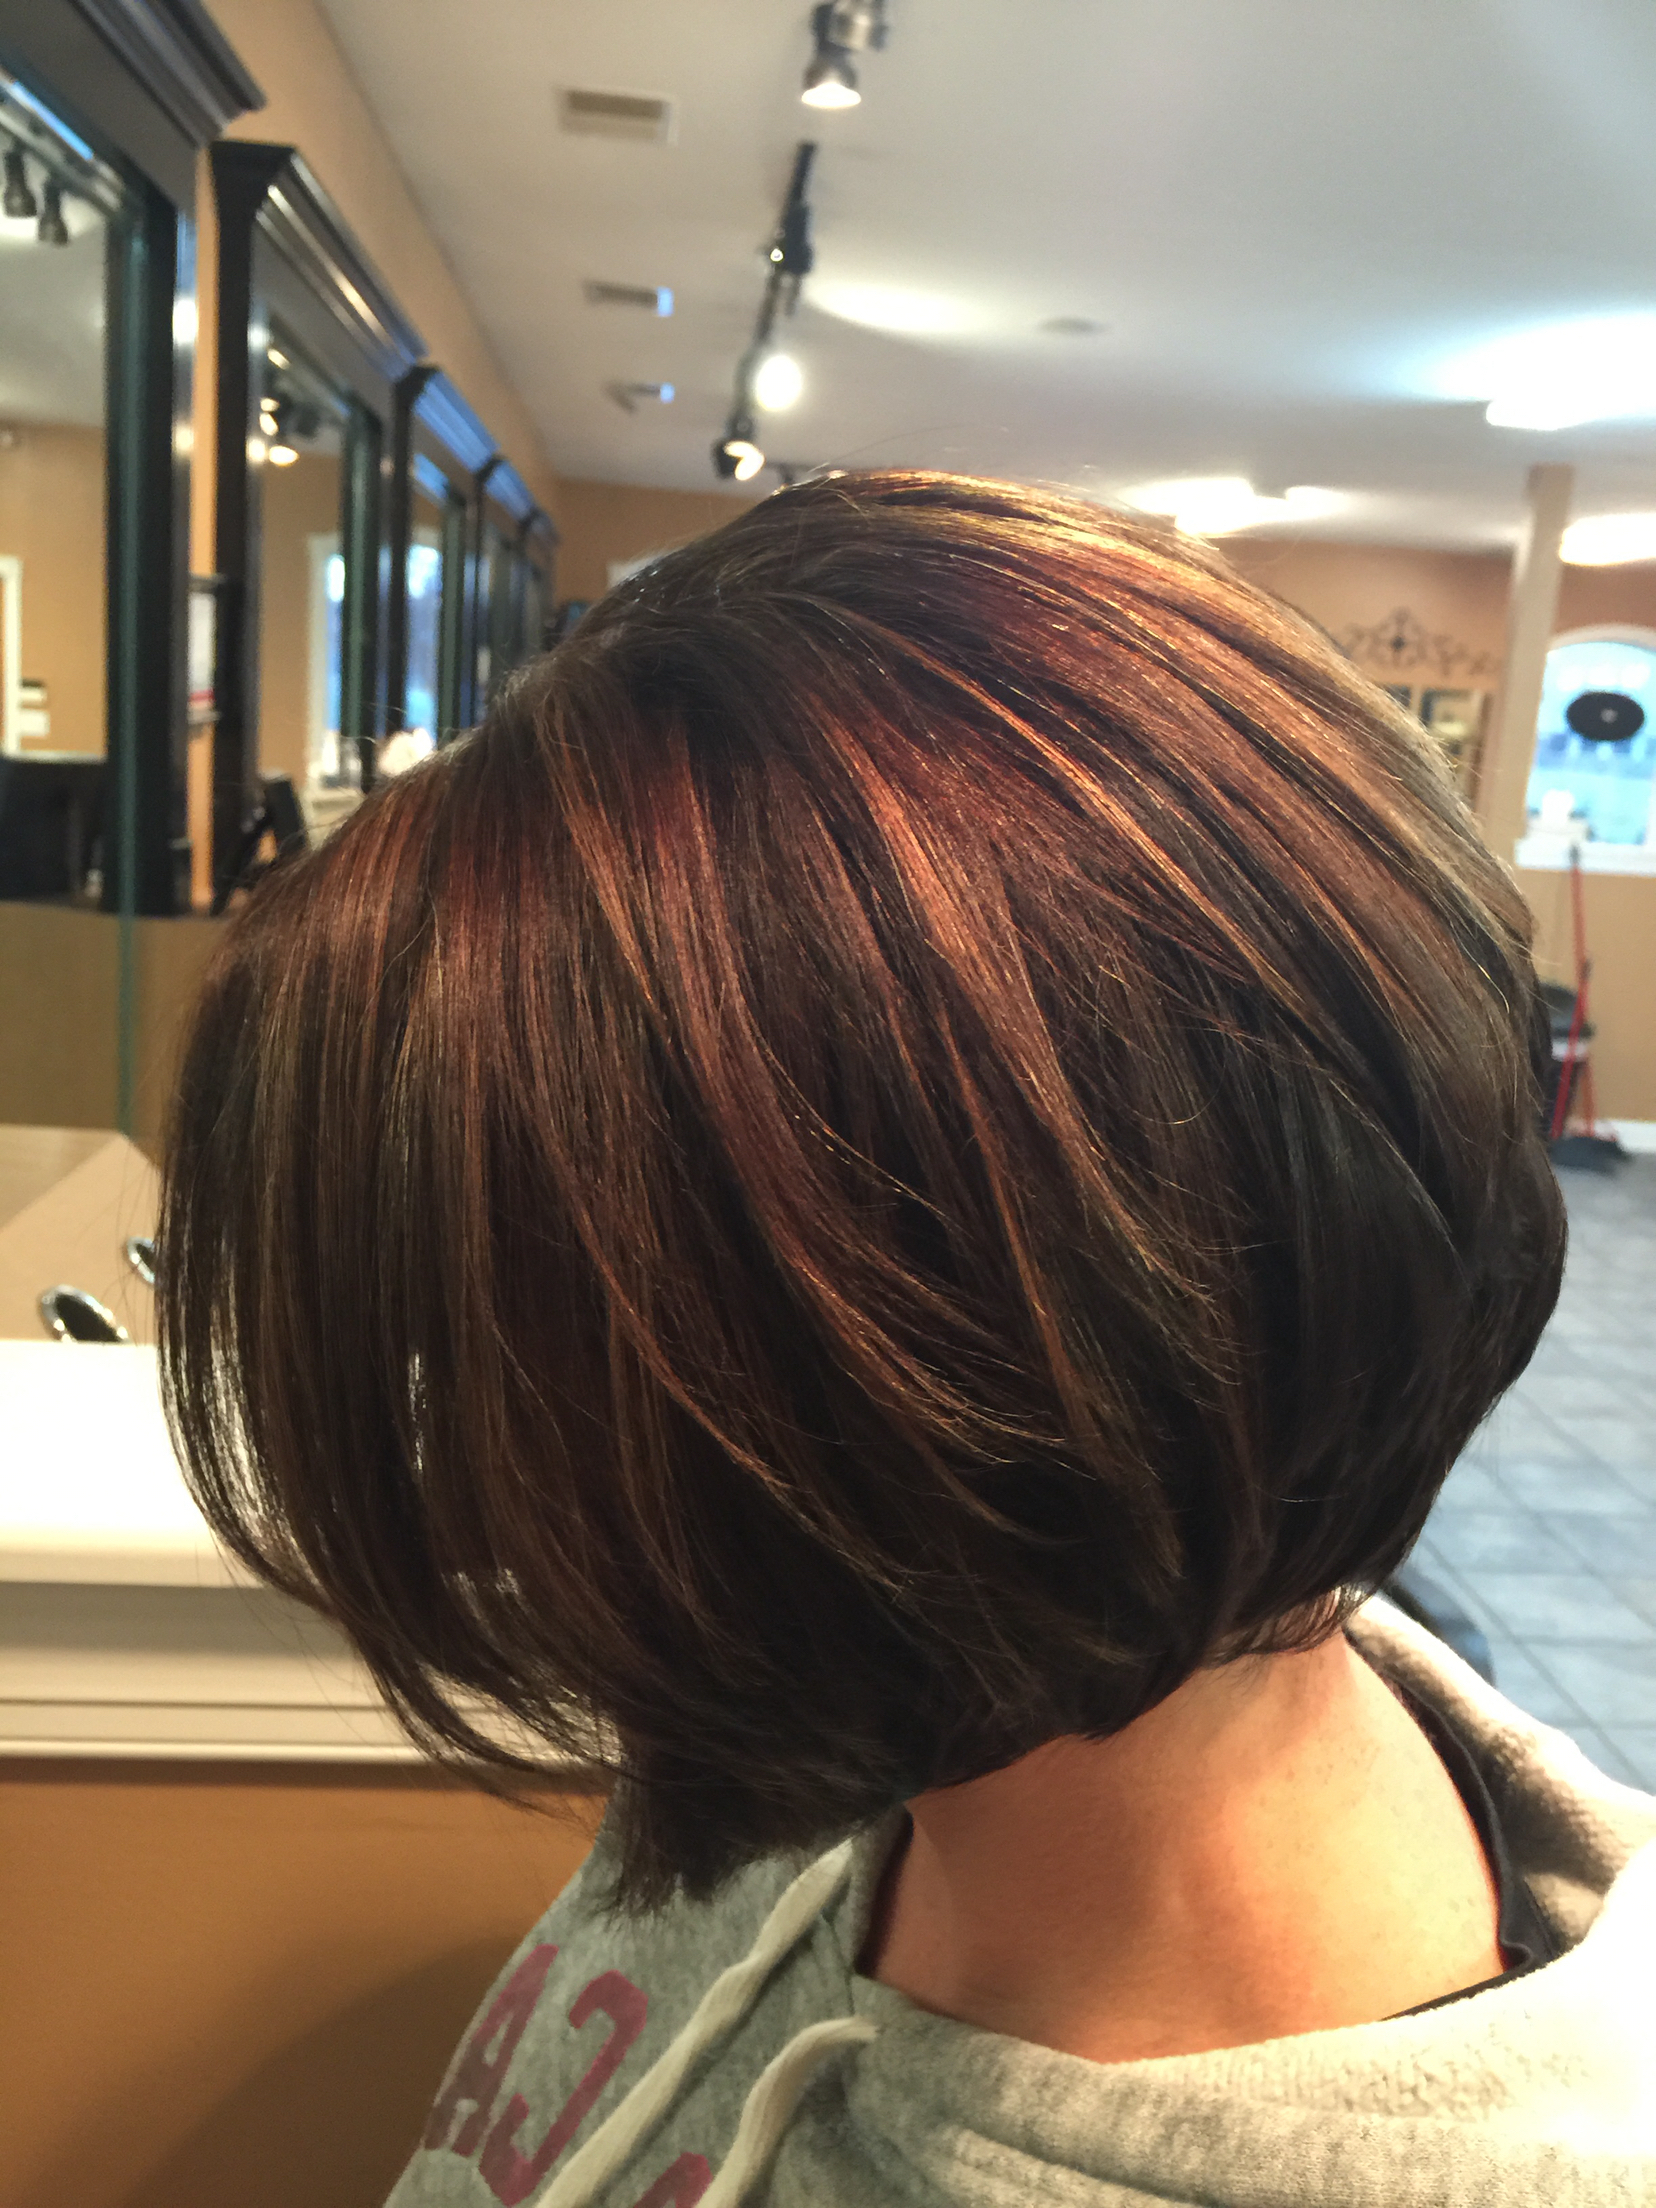 Captivating Caramel Bob Hairstyles On Inverted Bob Chocolate Brown For Short Curly Caramel Brown Bob Hairstyles (View 17 of 20)